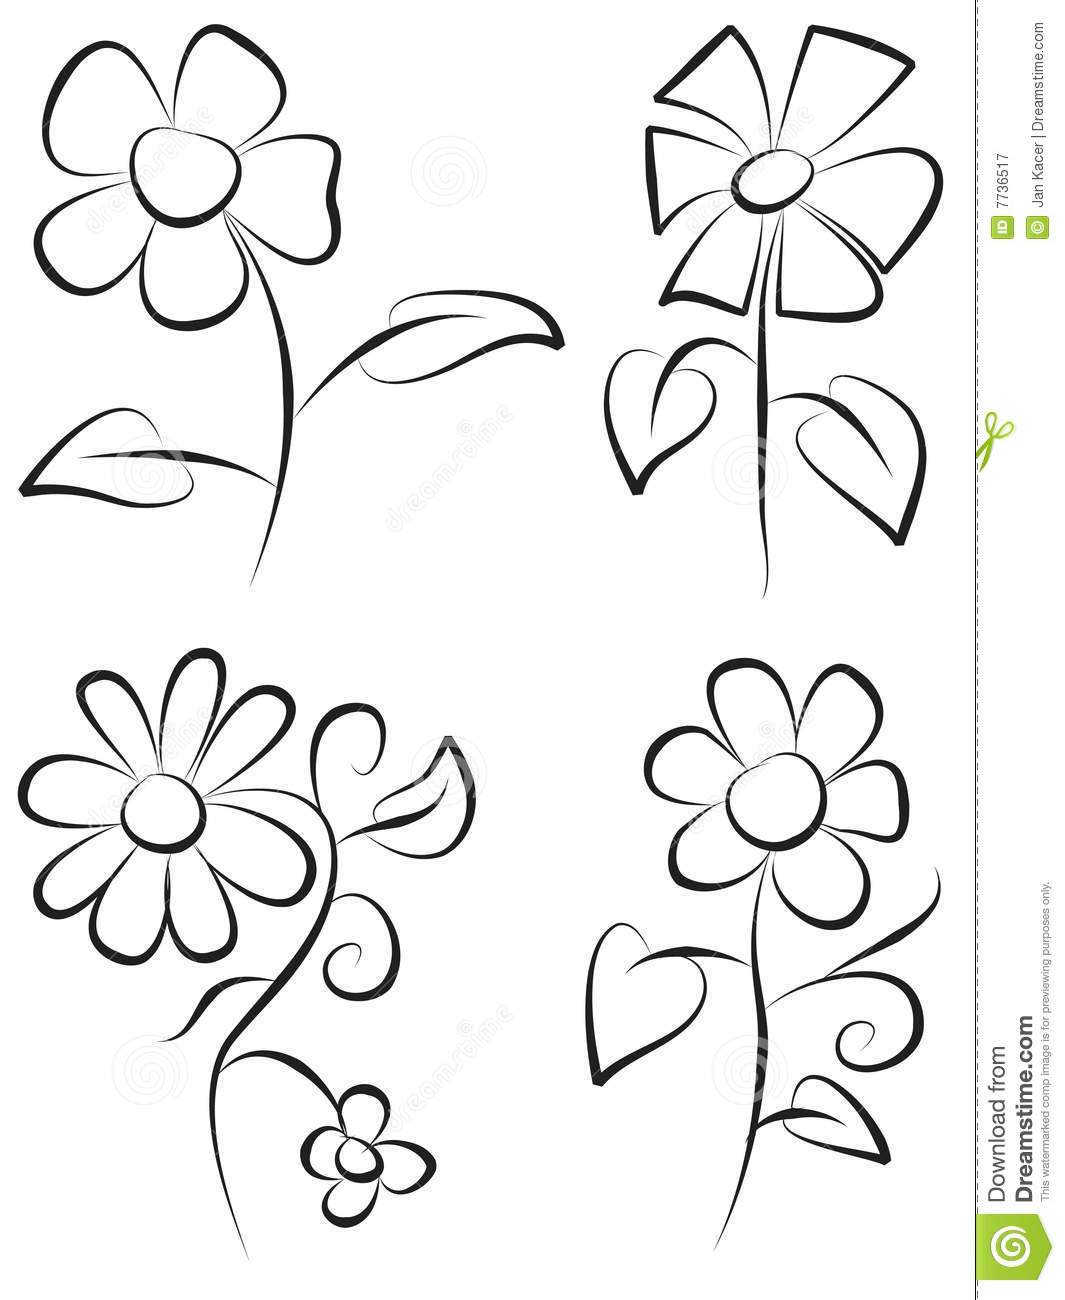 Hand Draw Flowers Royalty Free Stock Photography